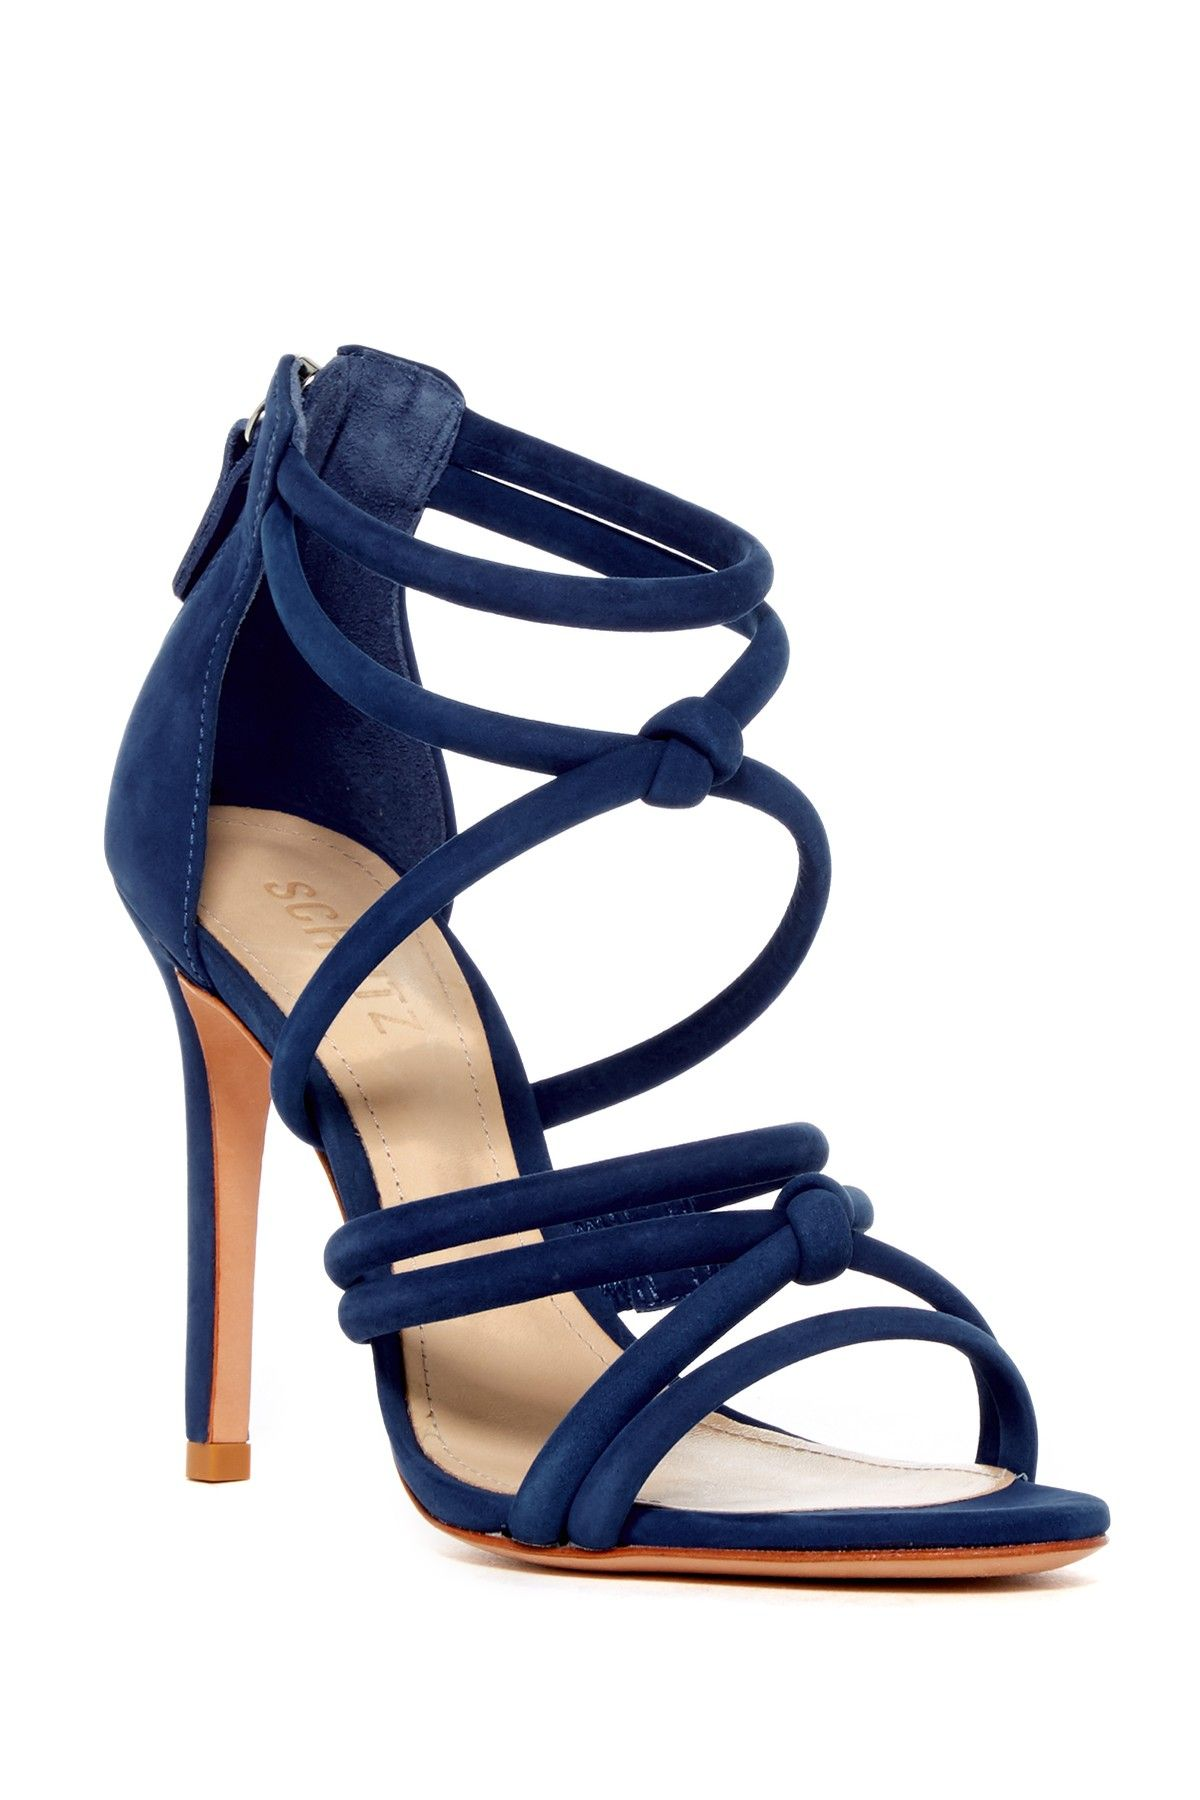 585641e7444 Navy   knotted! Strappy Schutz Mindy Heel Sandals